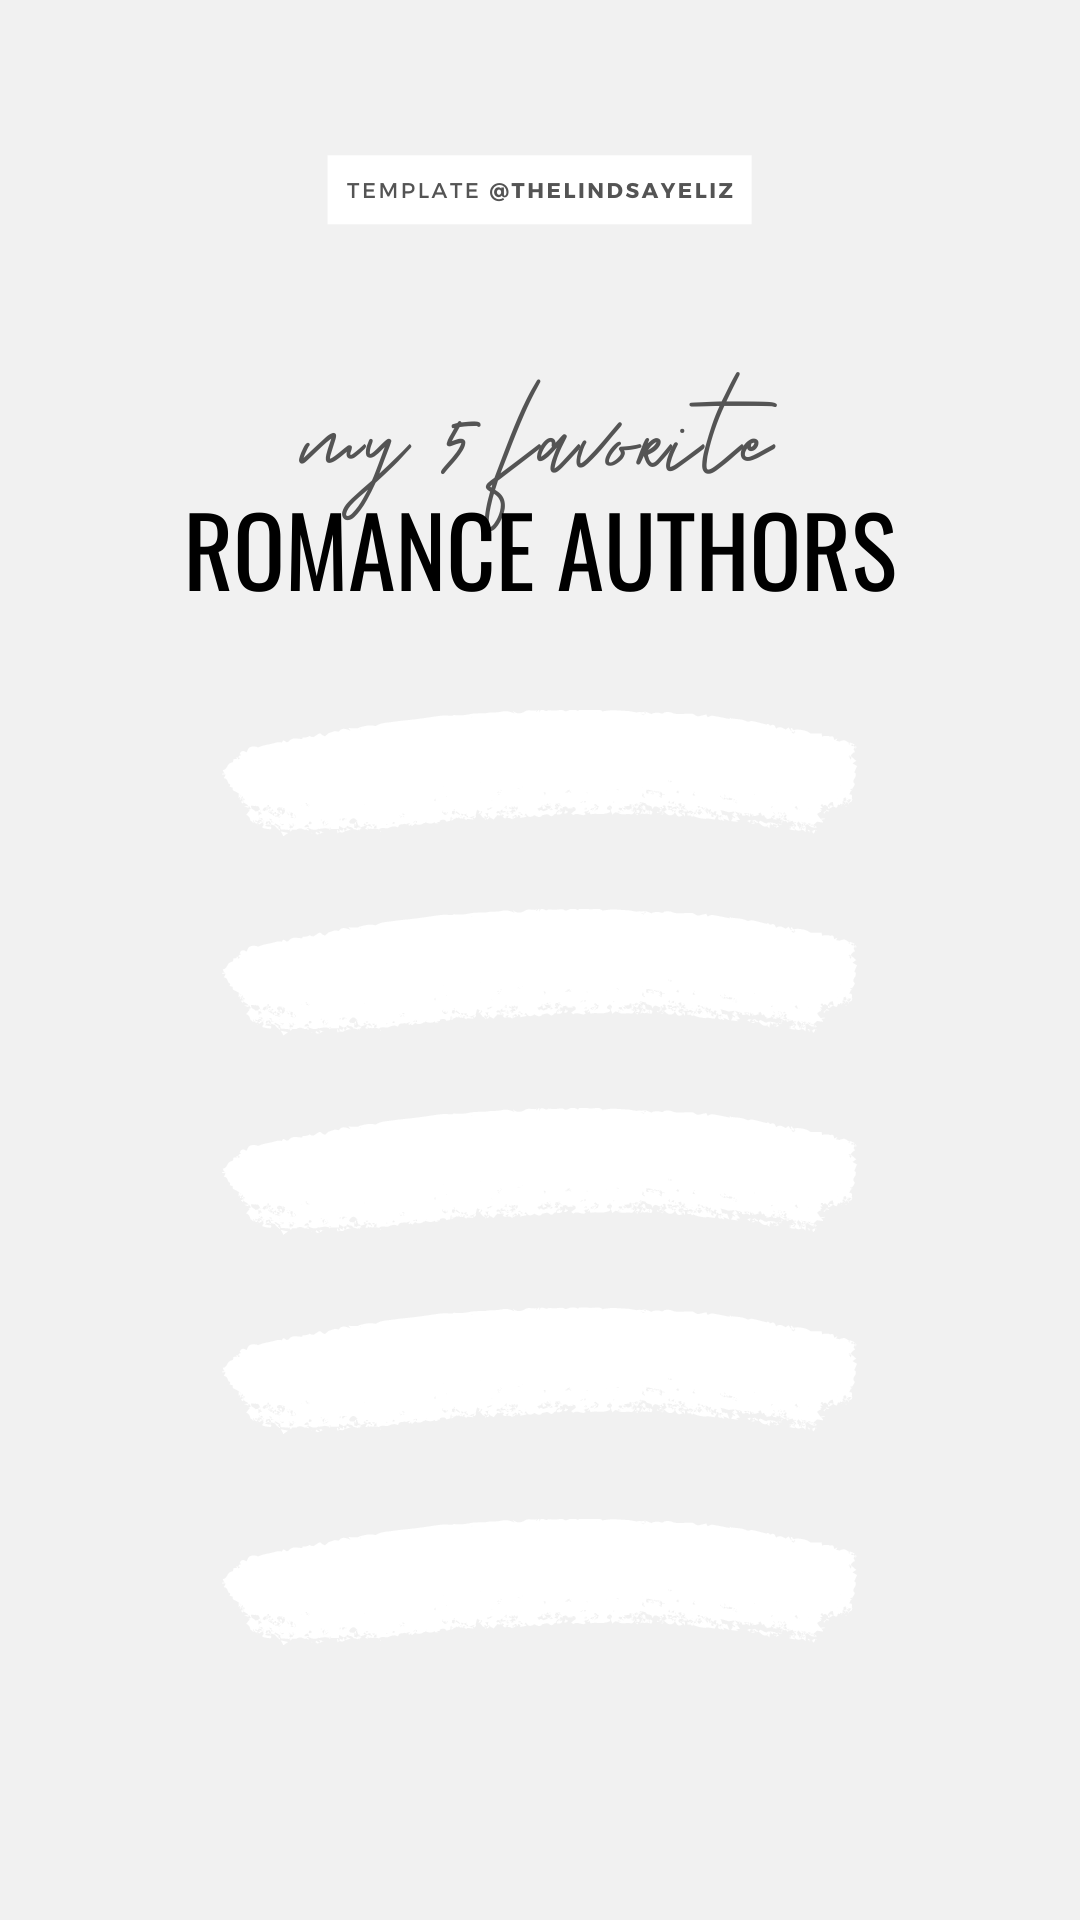 Fill out these fun Instagram story templates for romance lovers to share your favorite books, preferences, and opinions with your followers and keep them posted on your current romance reads. #bookish #igstories #igtemplates #templates #bookastagram